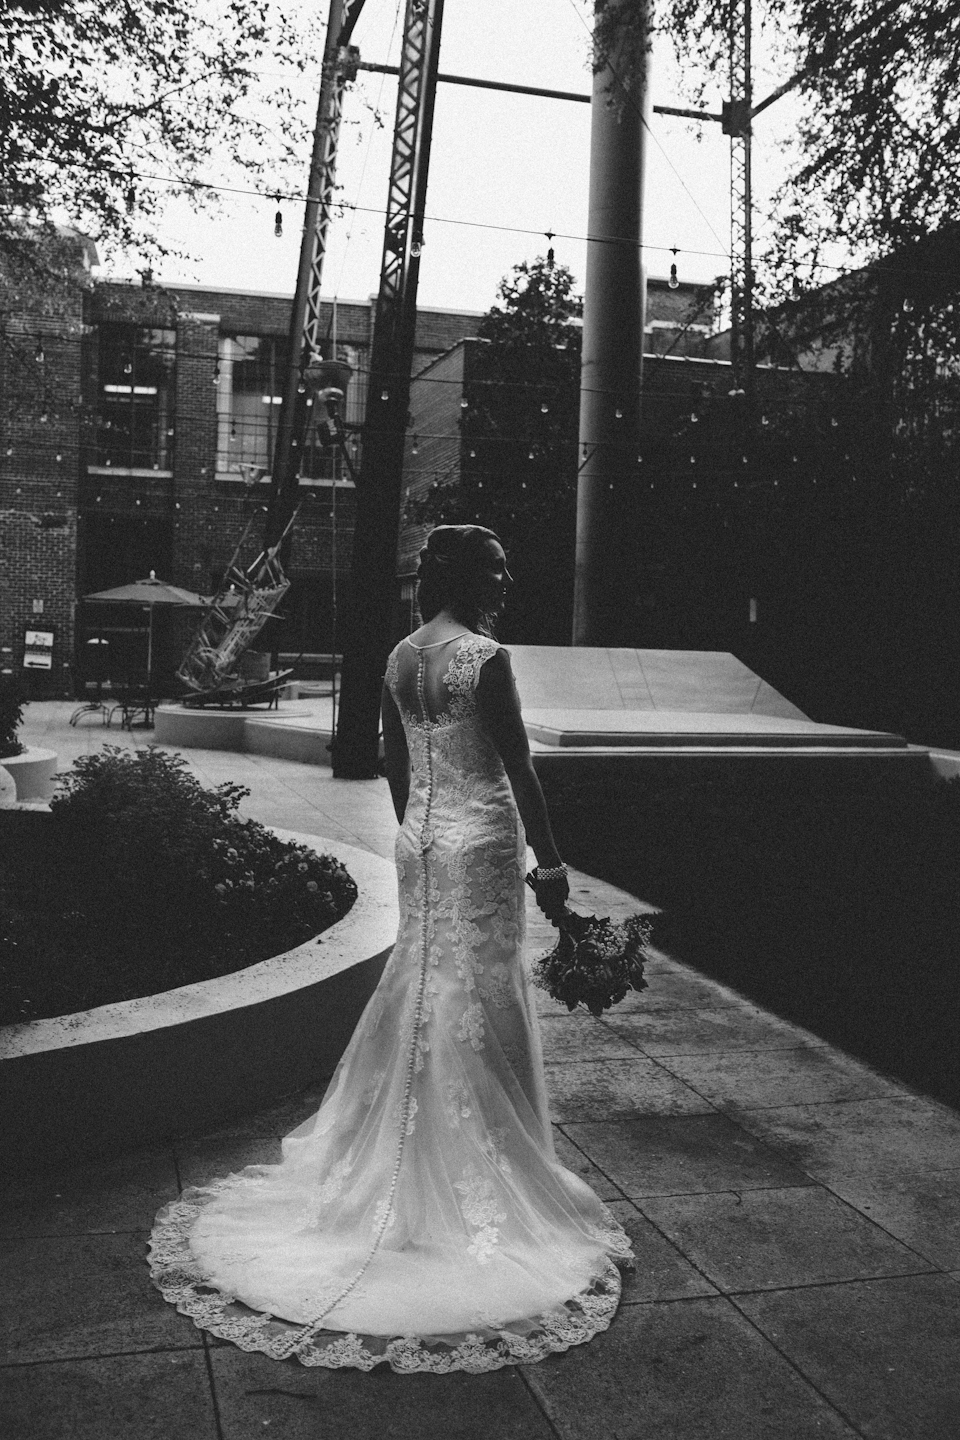 byronssouthendweddingcharlotteweddingphotographeruptownwedding23.jpg